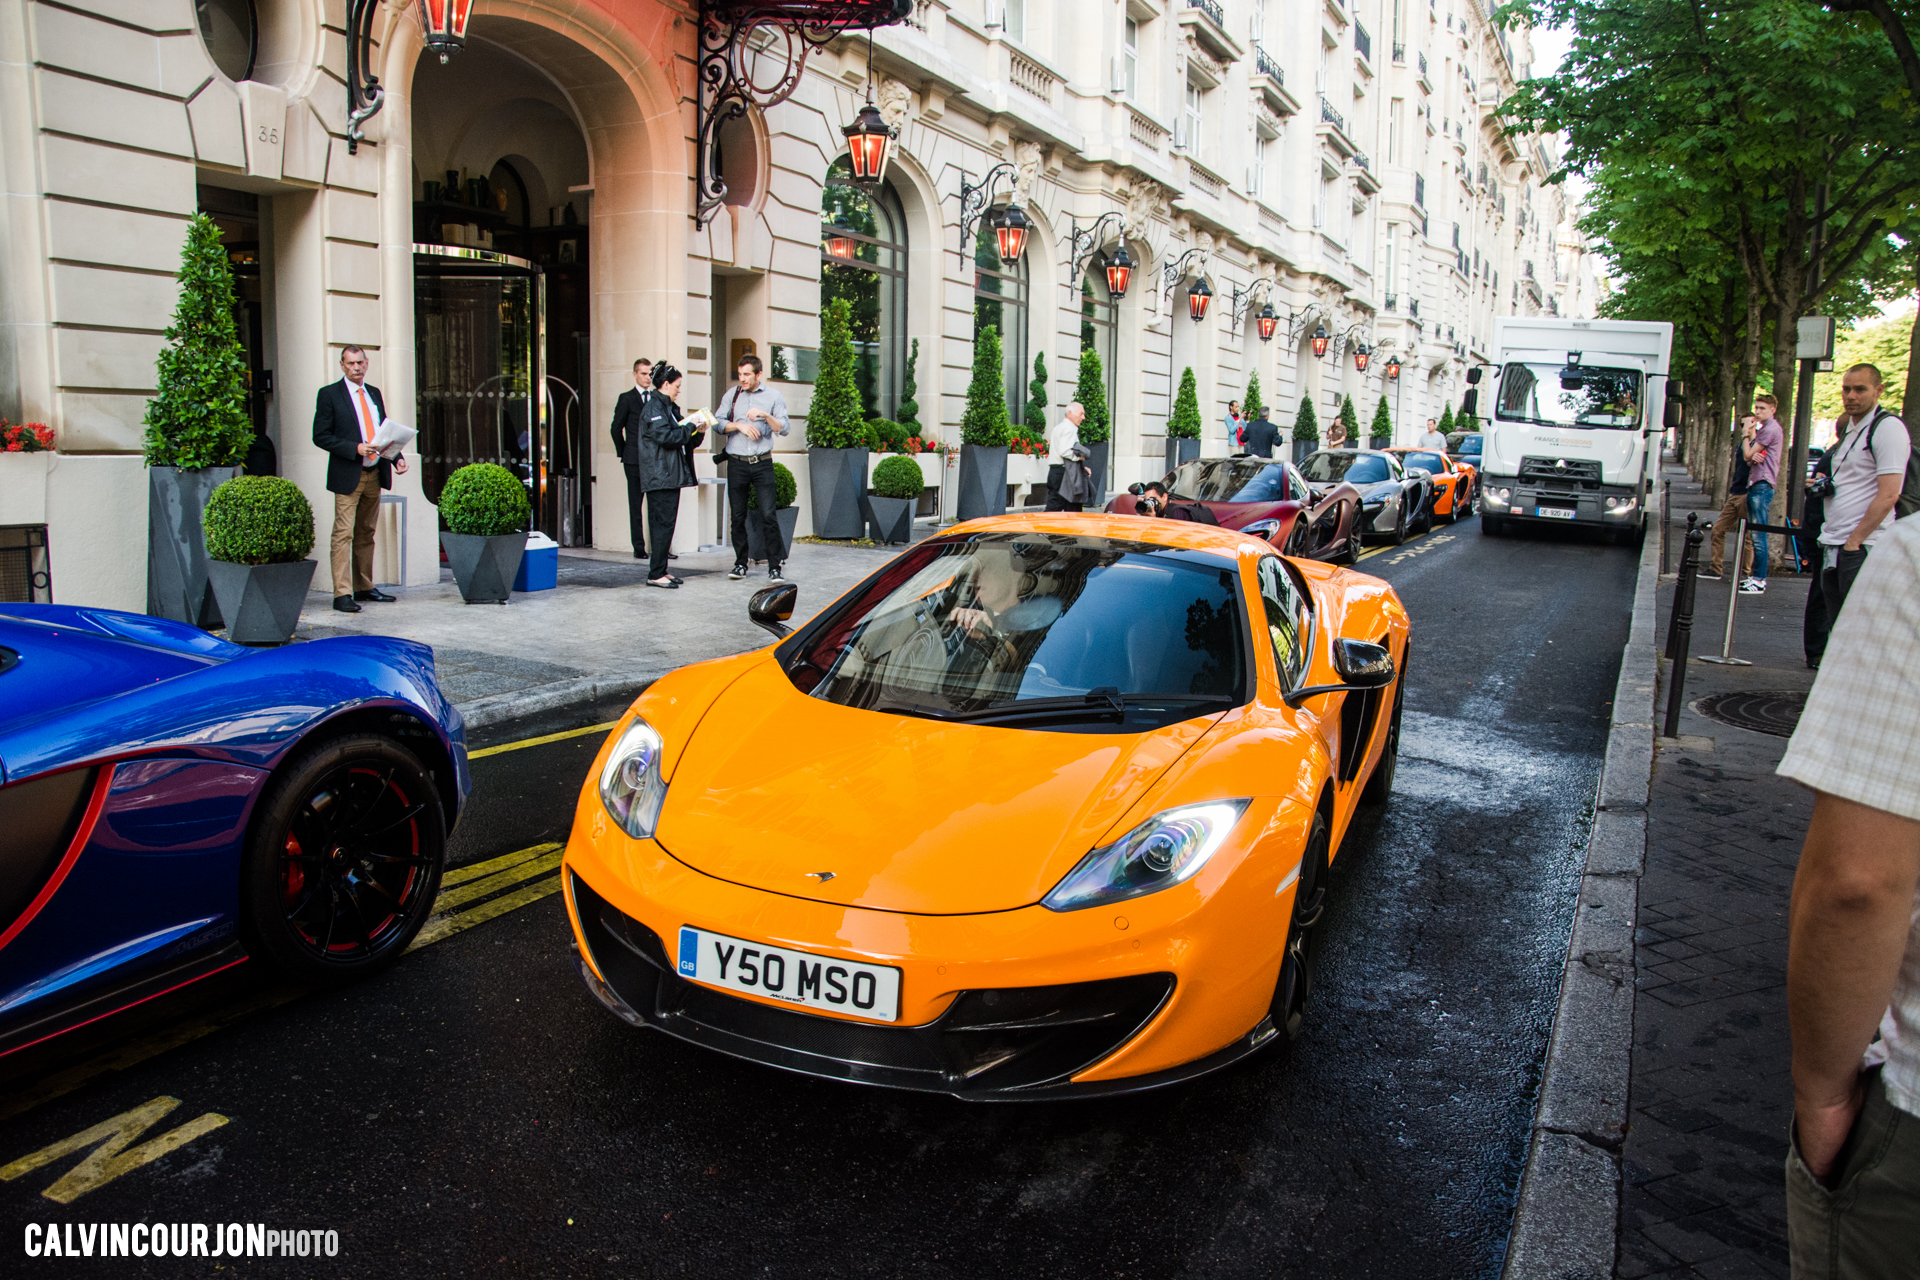 McLaren MP4-12C (2012) avant - 2015 - photo Calvin Courjon